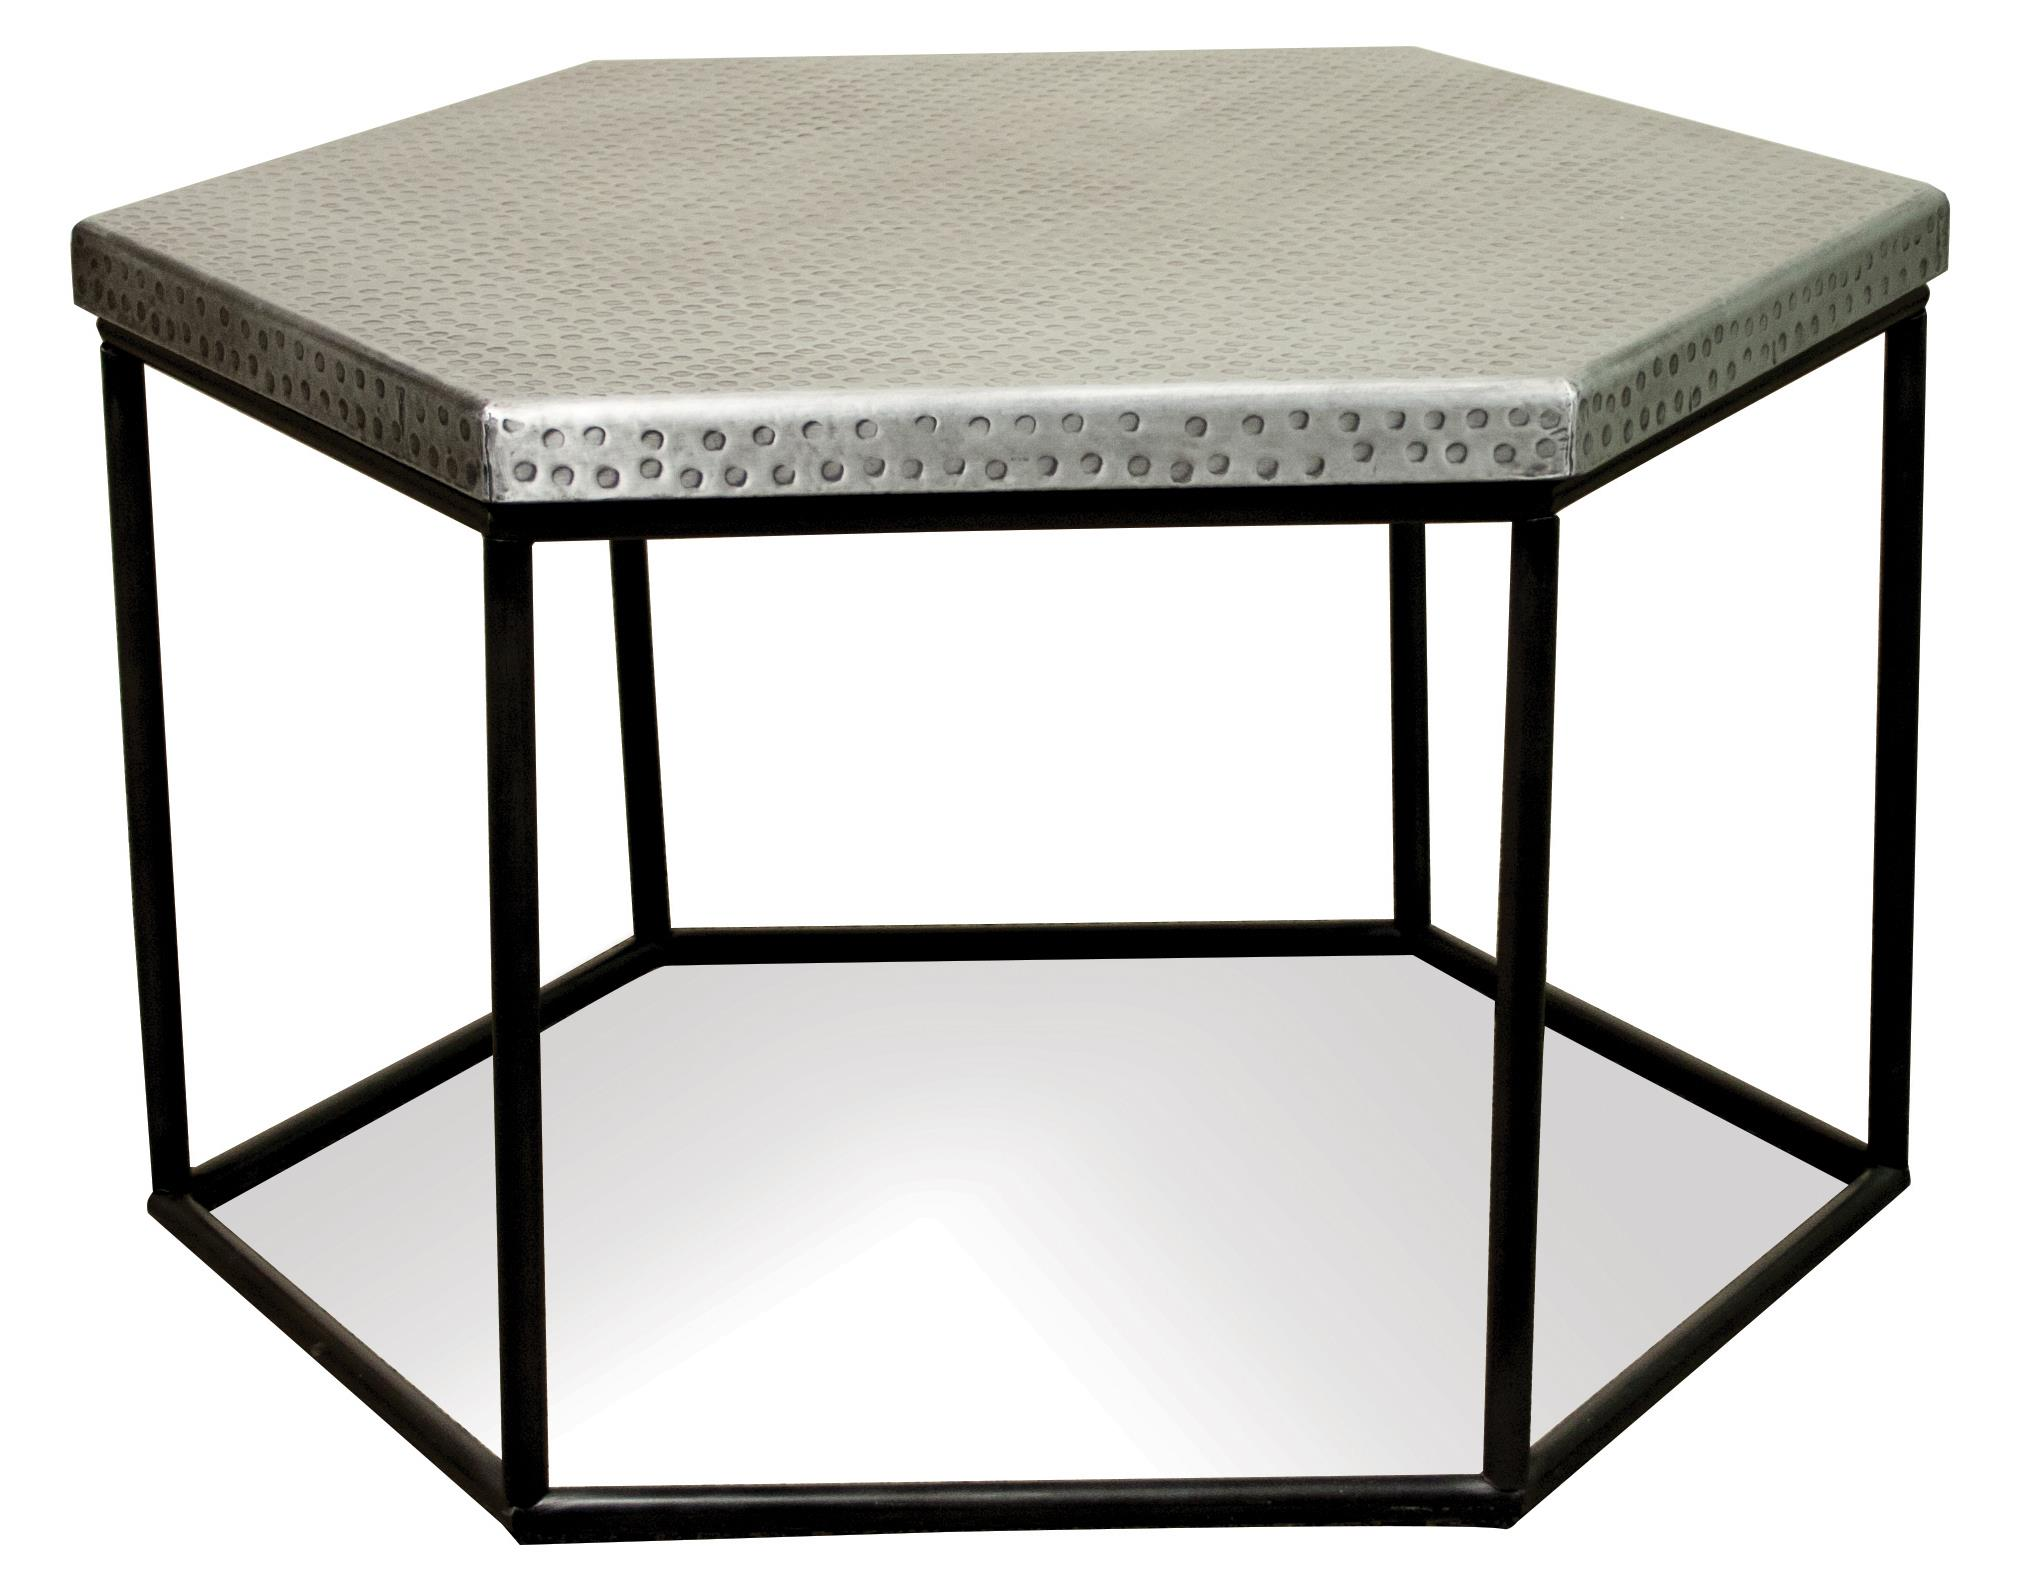 Hammered Metal Hexagon Coffee Table by Riverside Furniture